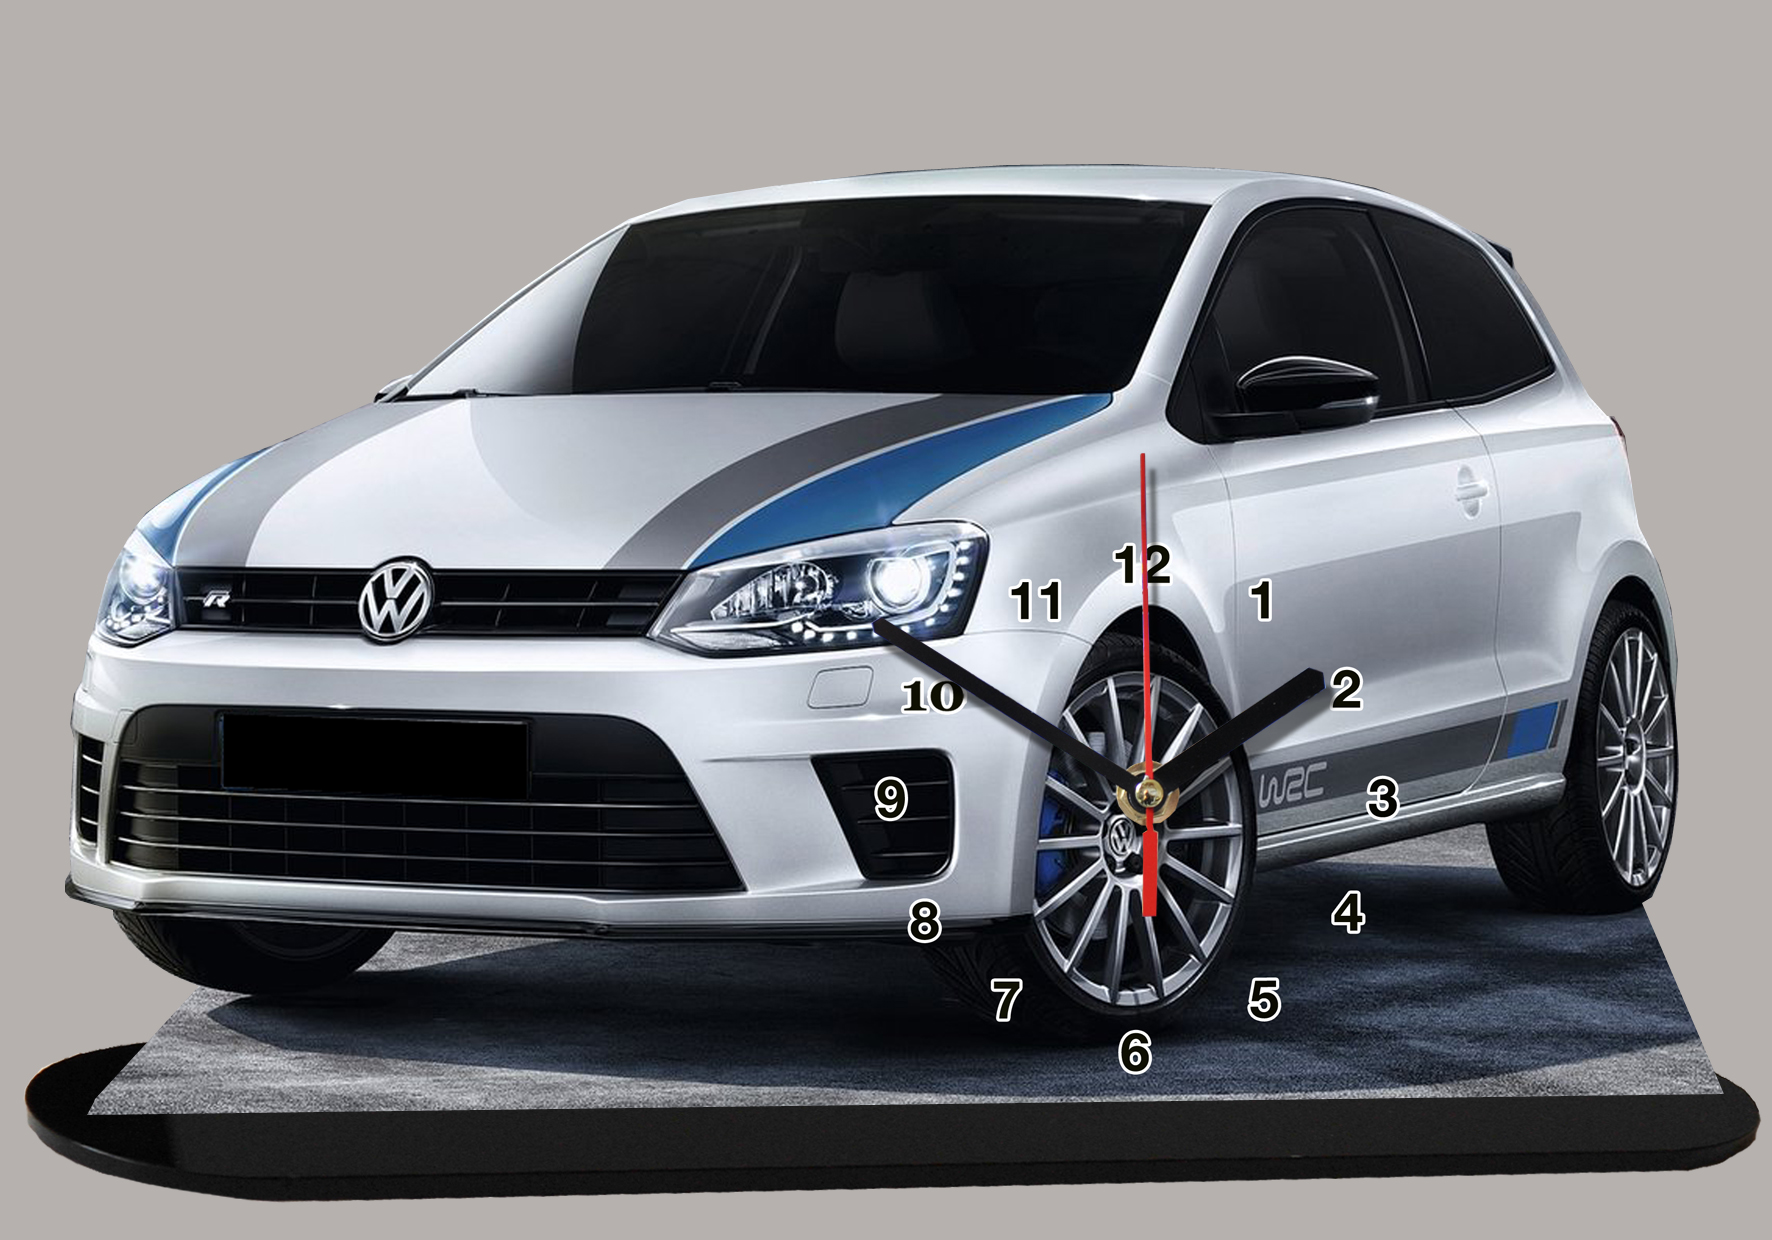 volkswagen polo r wrc en auto horloge miniature. Black Bedroom Furniture Sets. Home Design Ideas